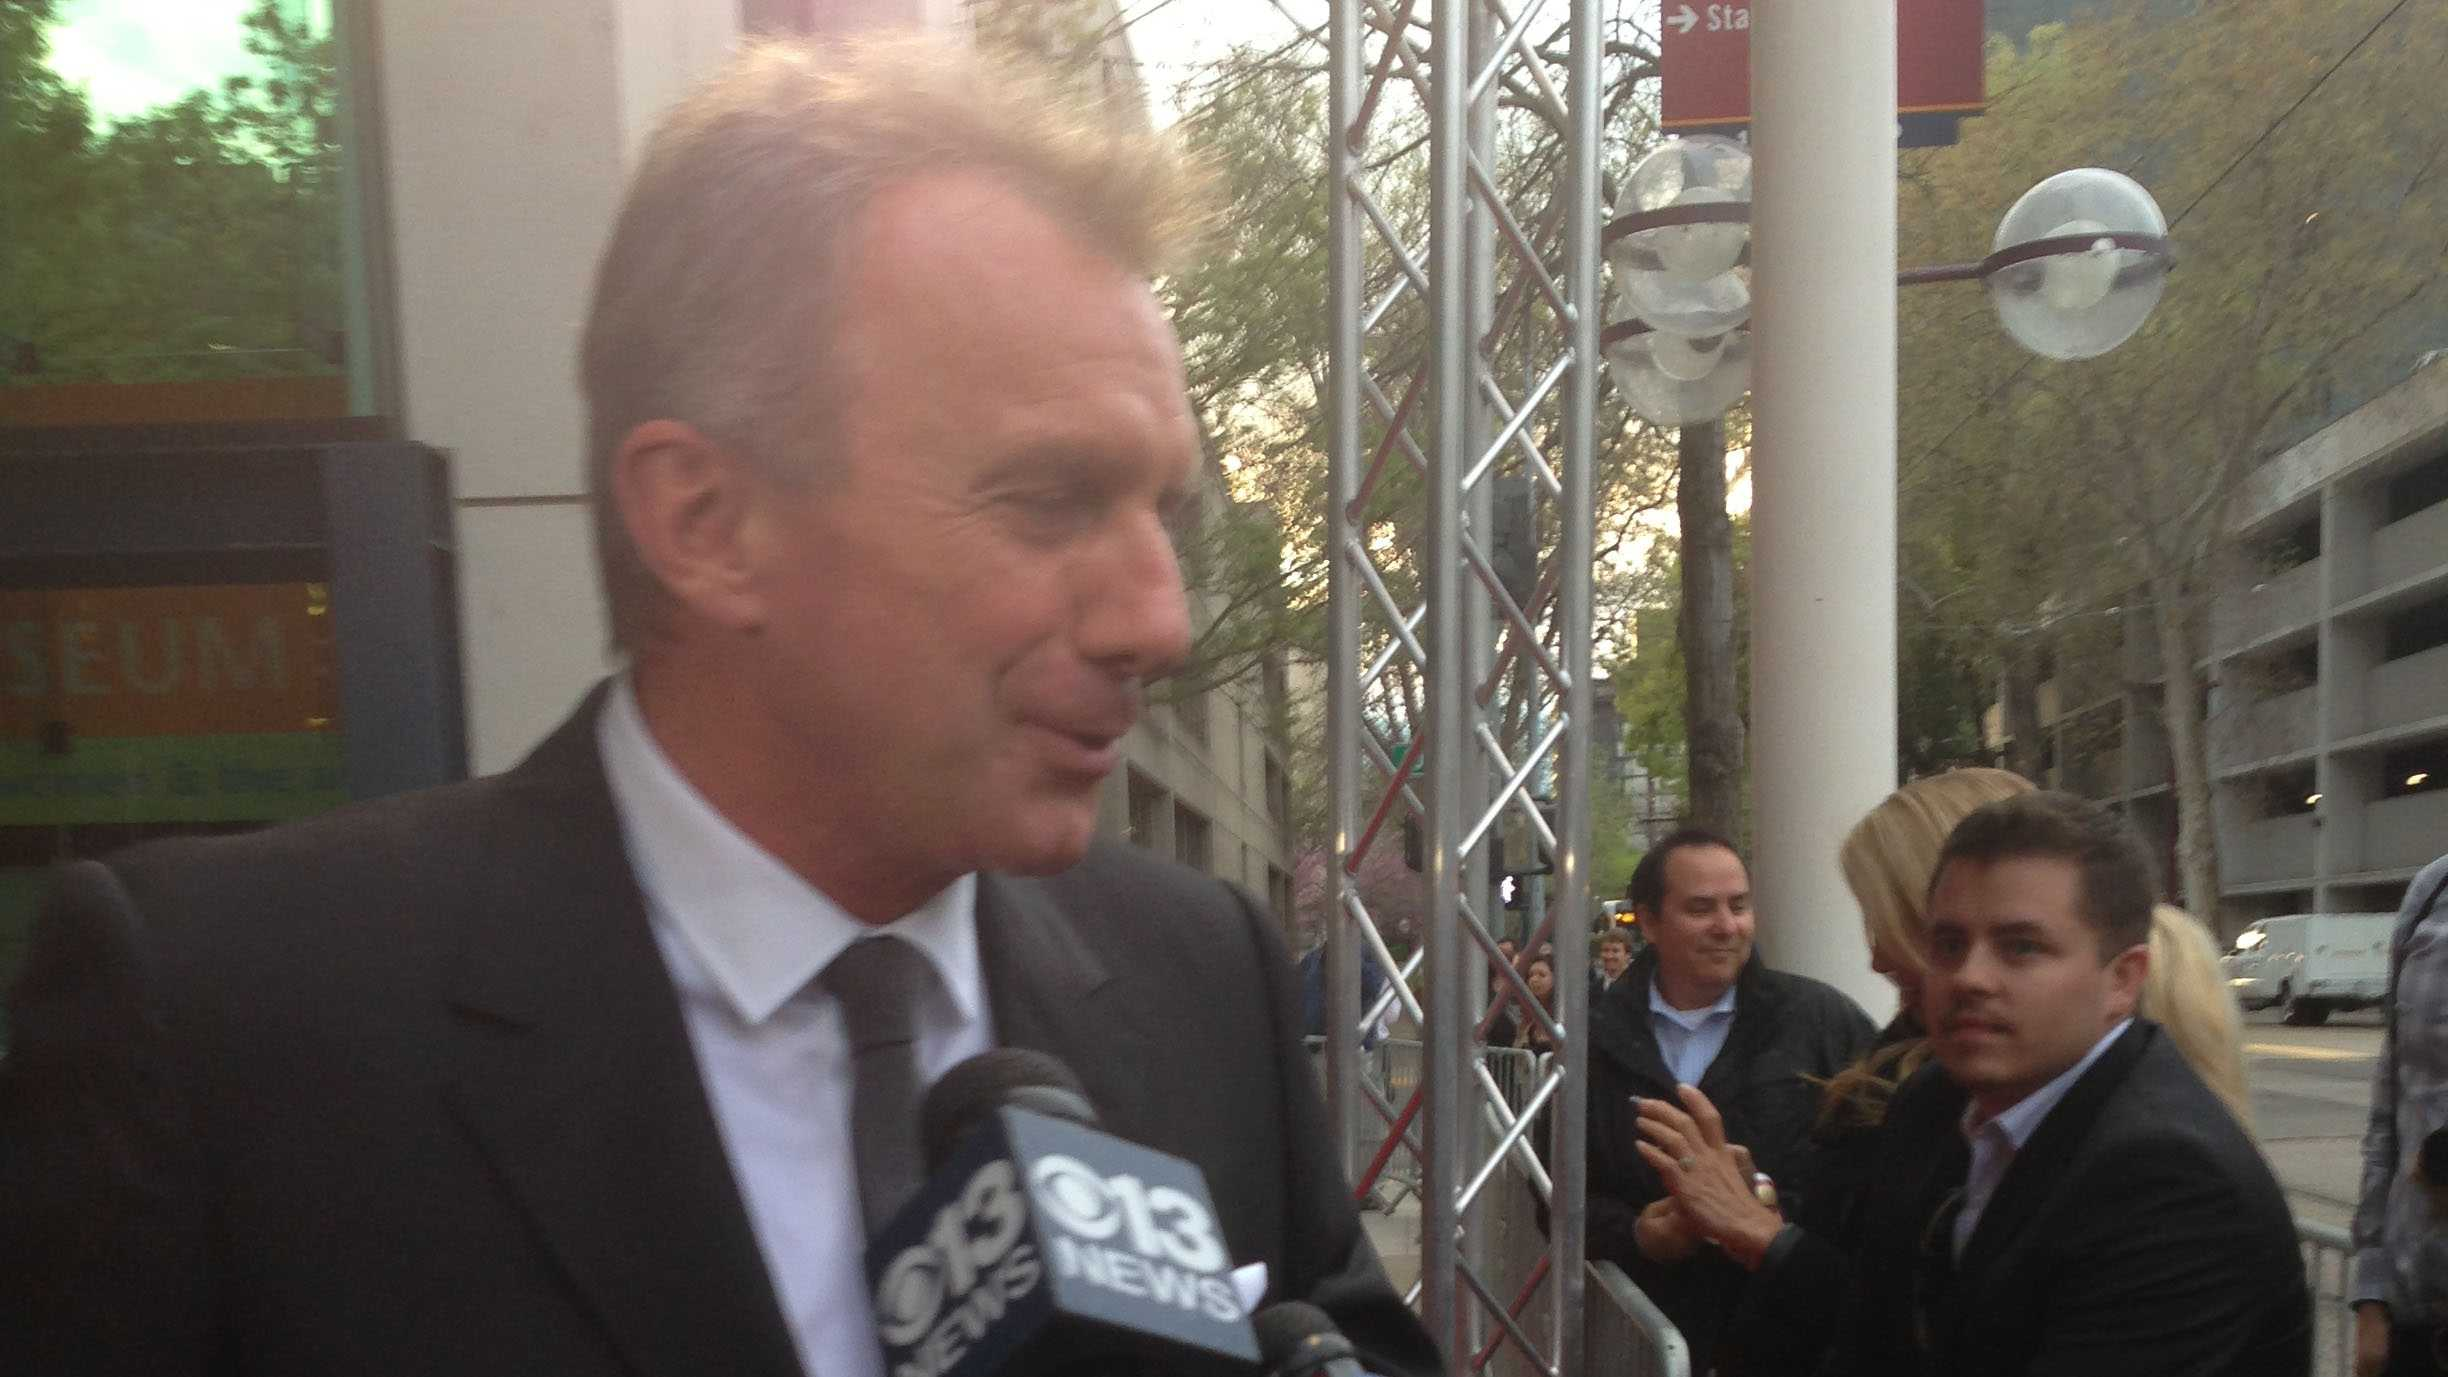 Four-time Super Bowl winner Joe Montana at the California Hall of Fame event held Wednesday night (March 20, 2013).